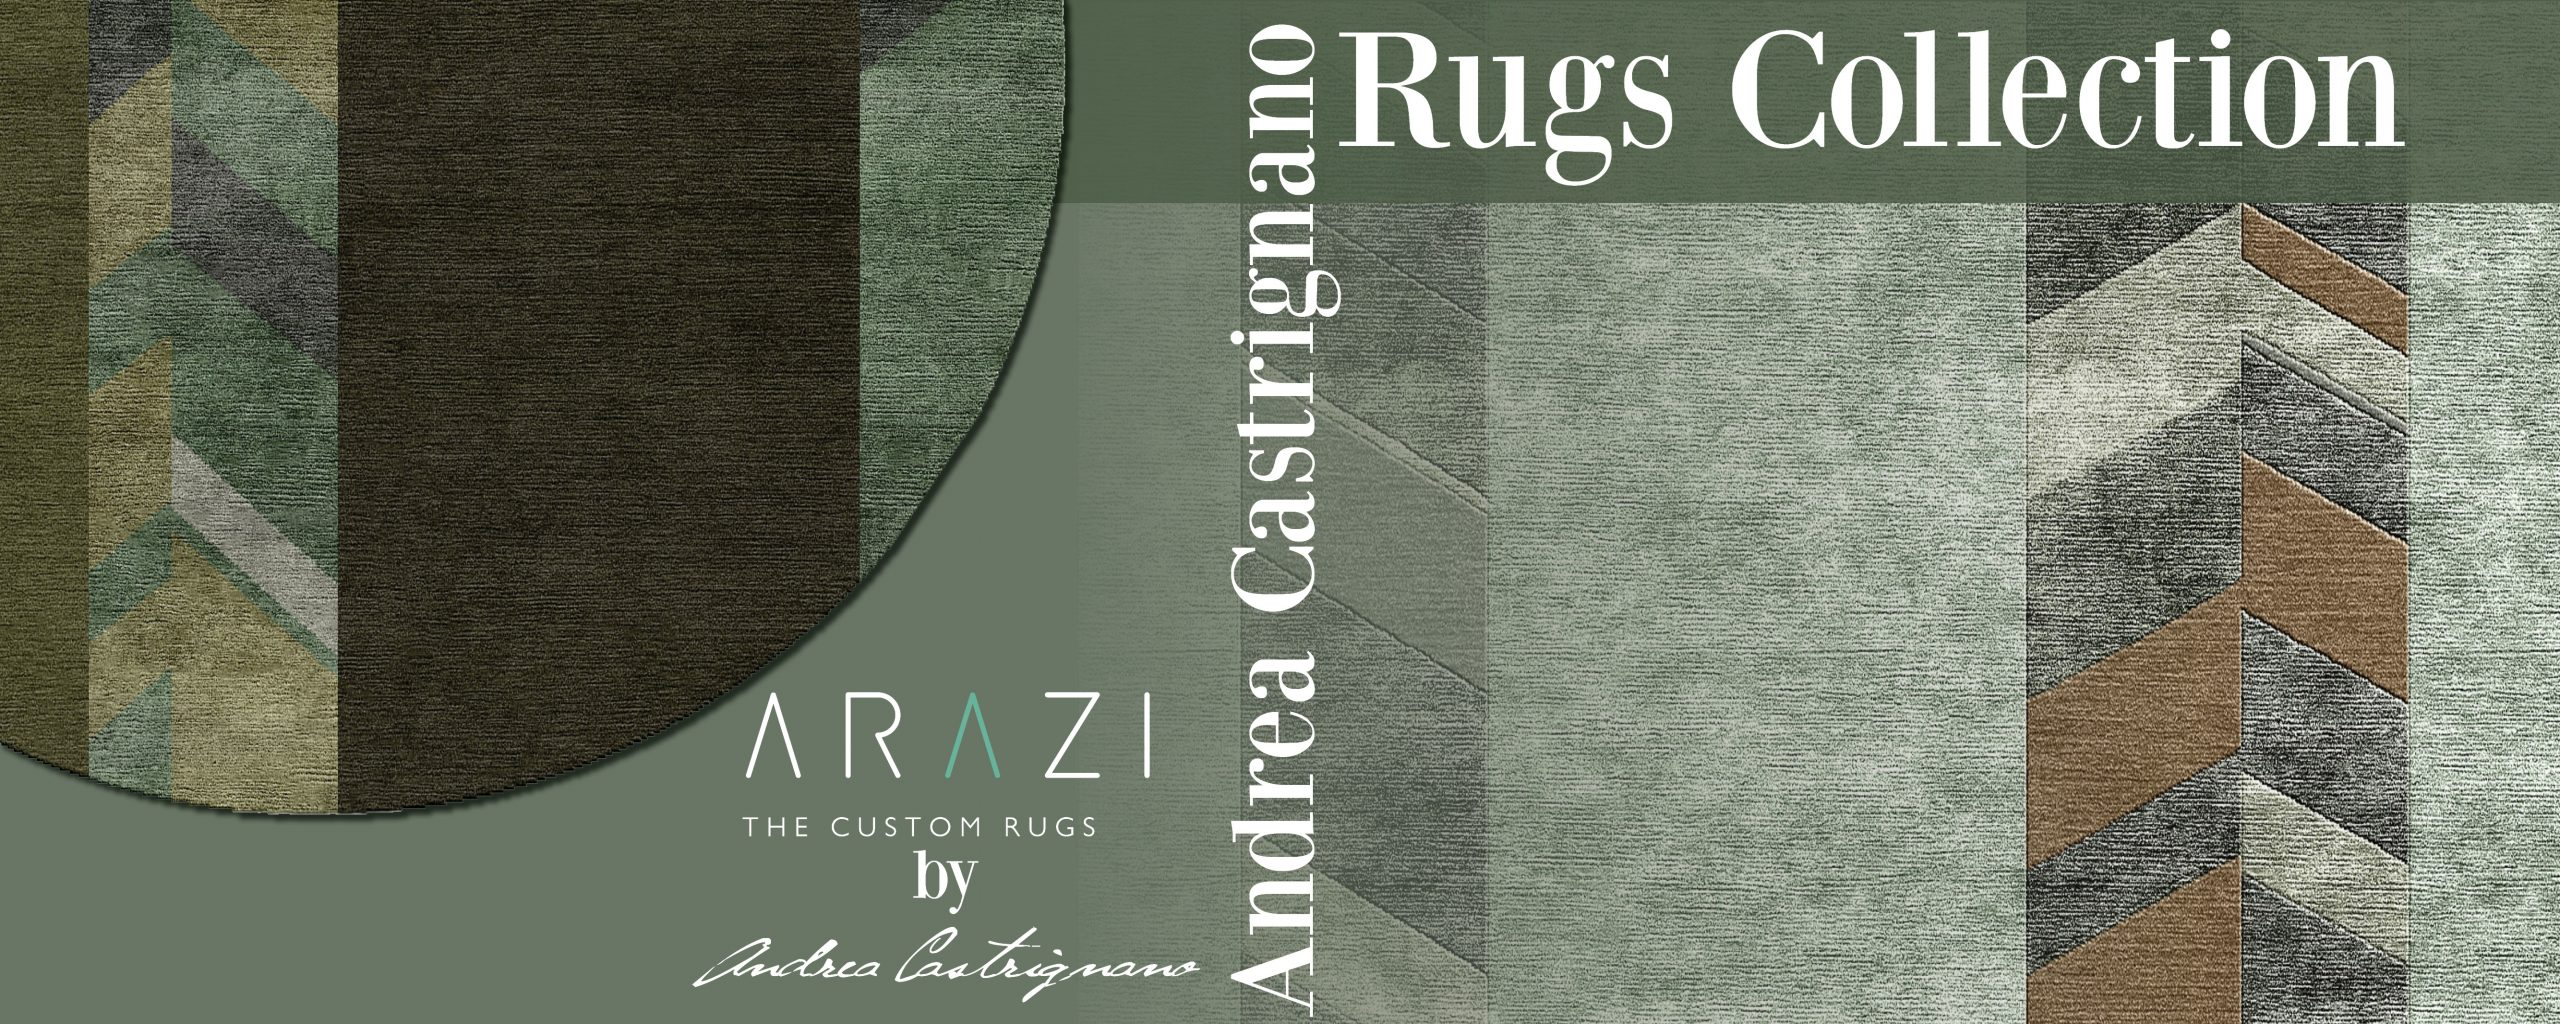 Andrea Castrignano Rugs Collection_Img